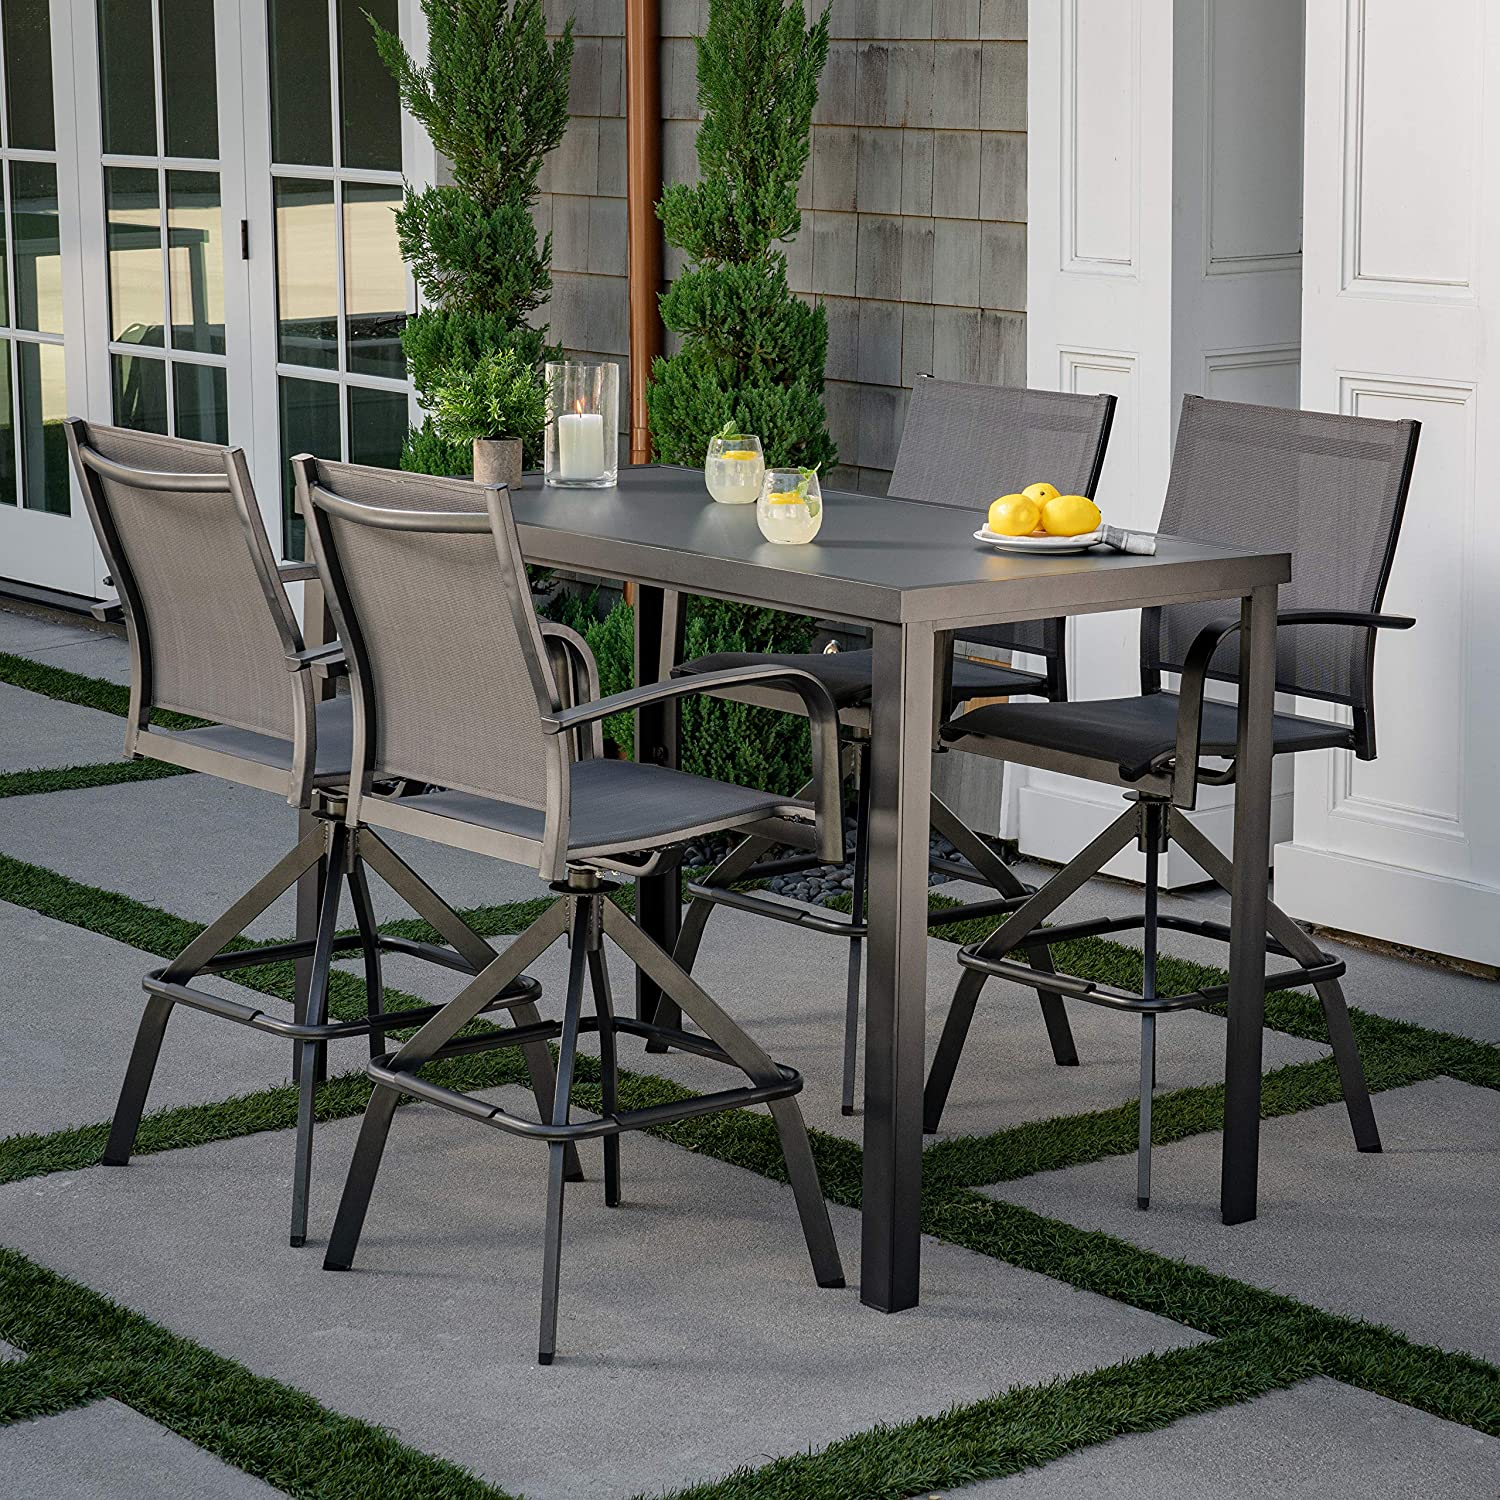 hanover naples 5 piece high dining set with 4 swivel chairs and a glass top bar table gray napdn5pcbr gry outdoor furniture